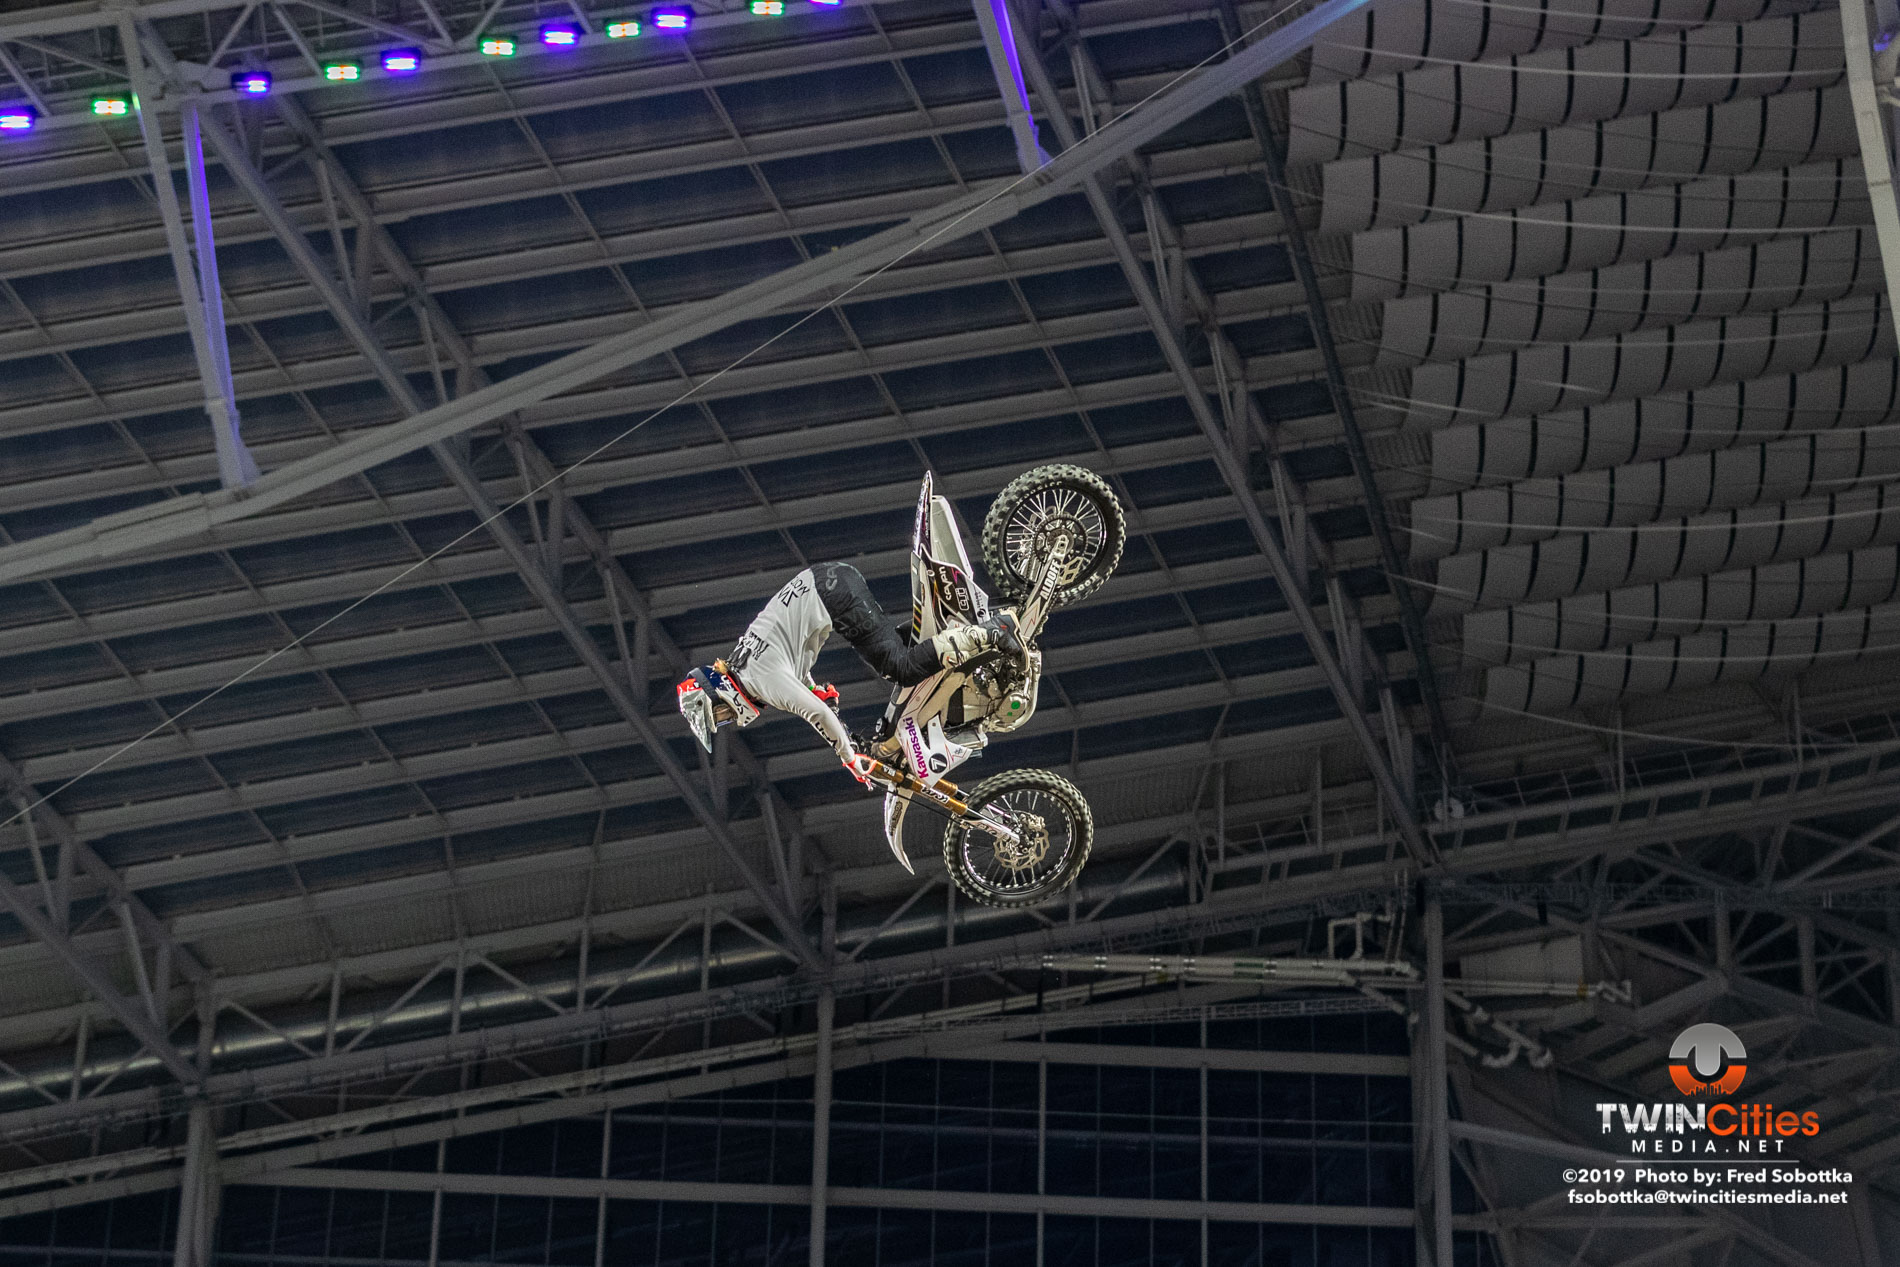 Moto-X-Quarterpipe-High-Air-03